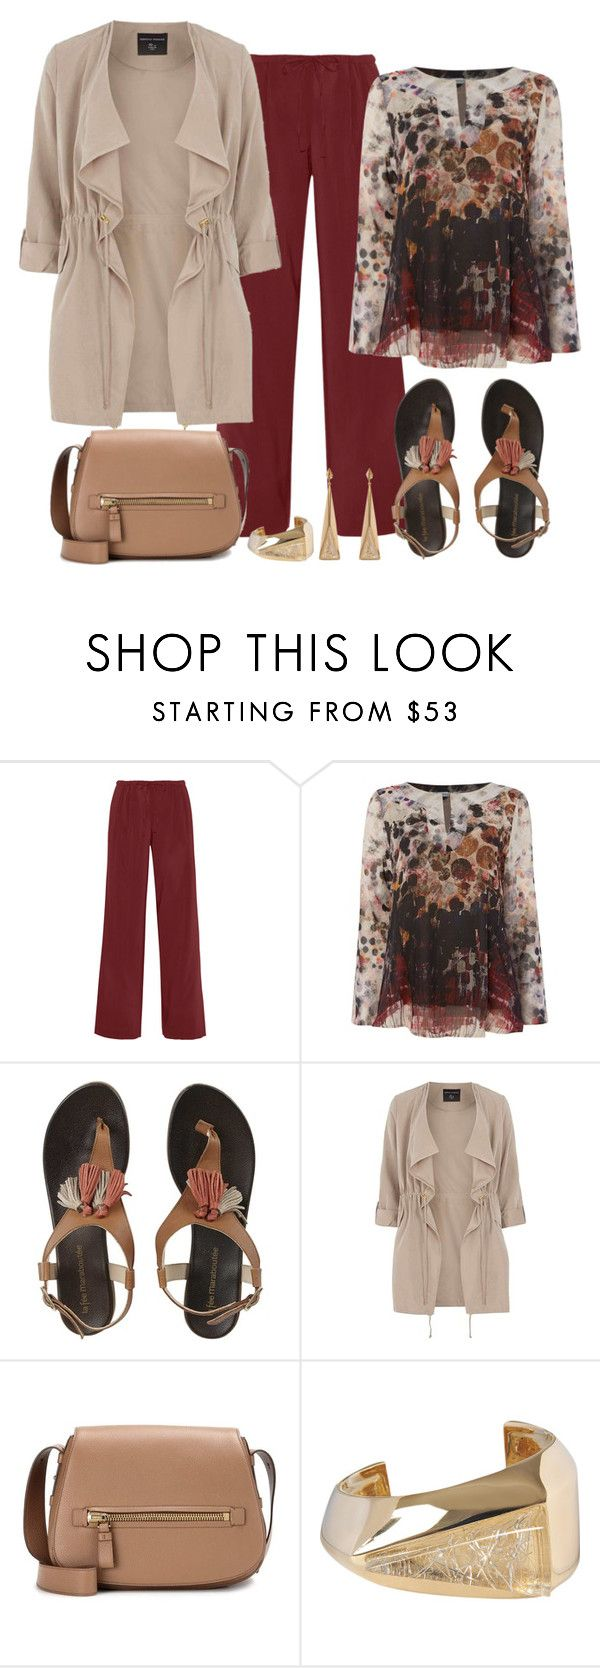 """La Fee Maraboutee Tunic Look"" by romaboots-1 ❤ liked on Polyvore featuring Theory, La Fée Maraboutée, Dorothy Perkins, Tom Ford and Chloé"